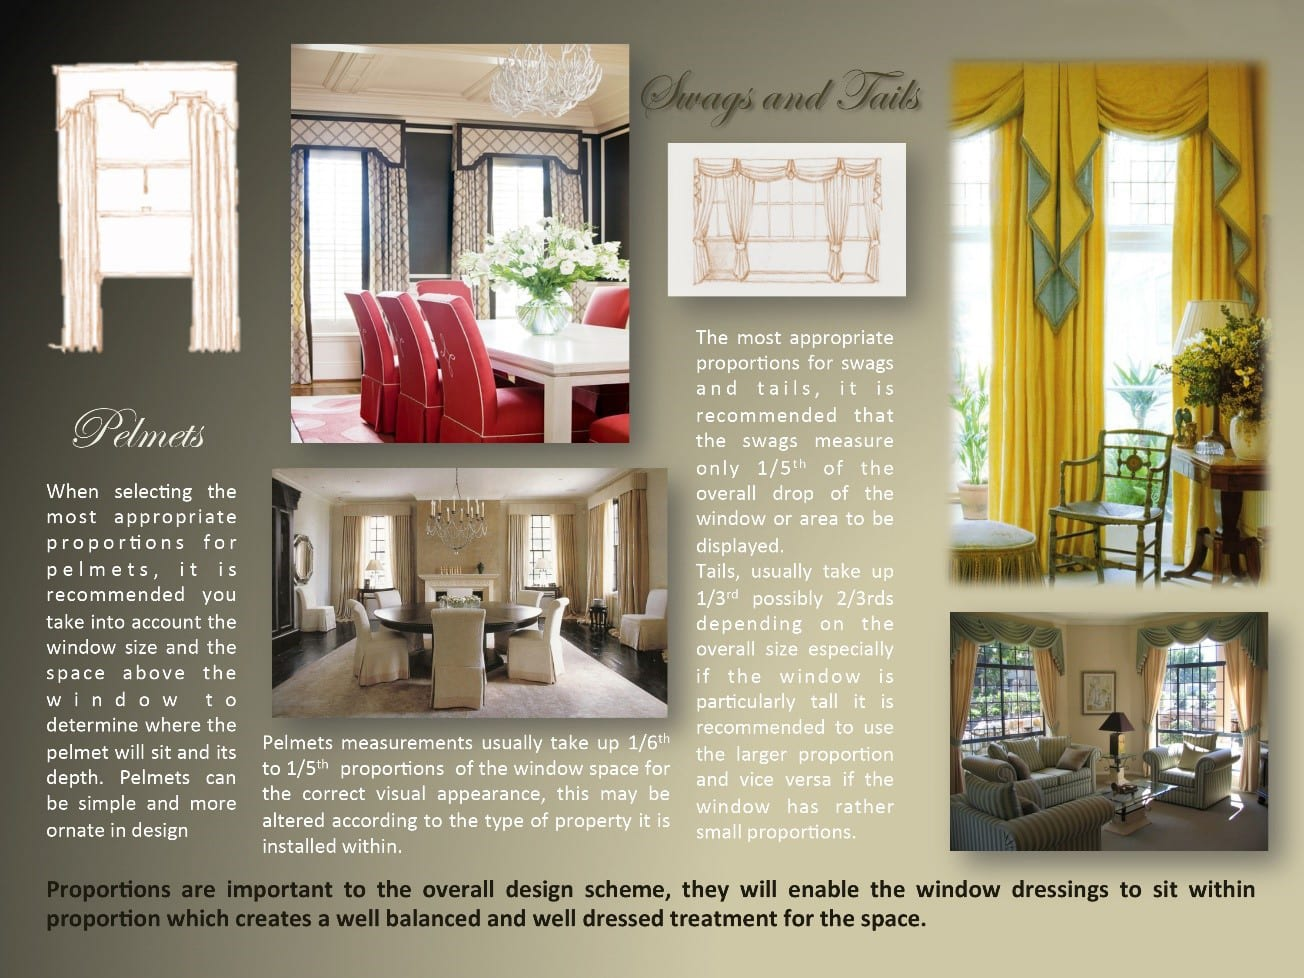 interior design board curtains, pelmets, swags and tails